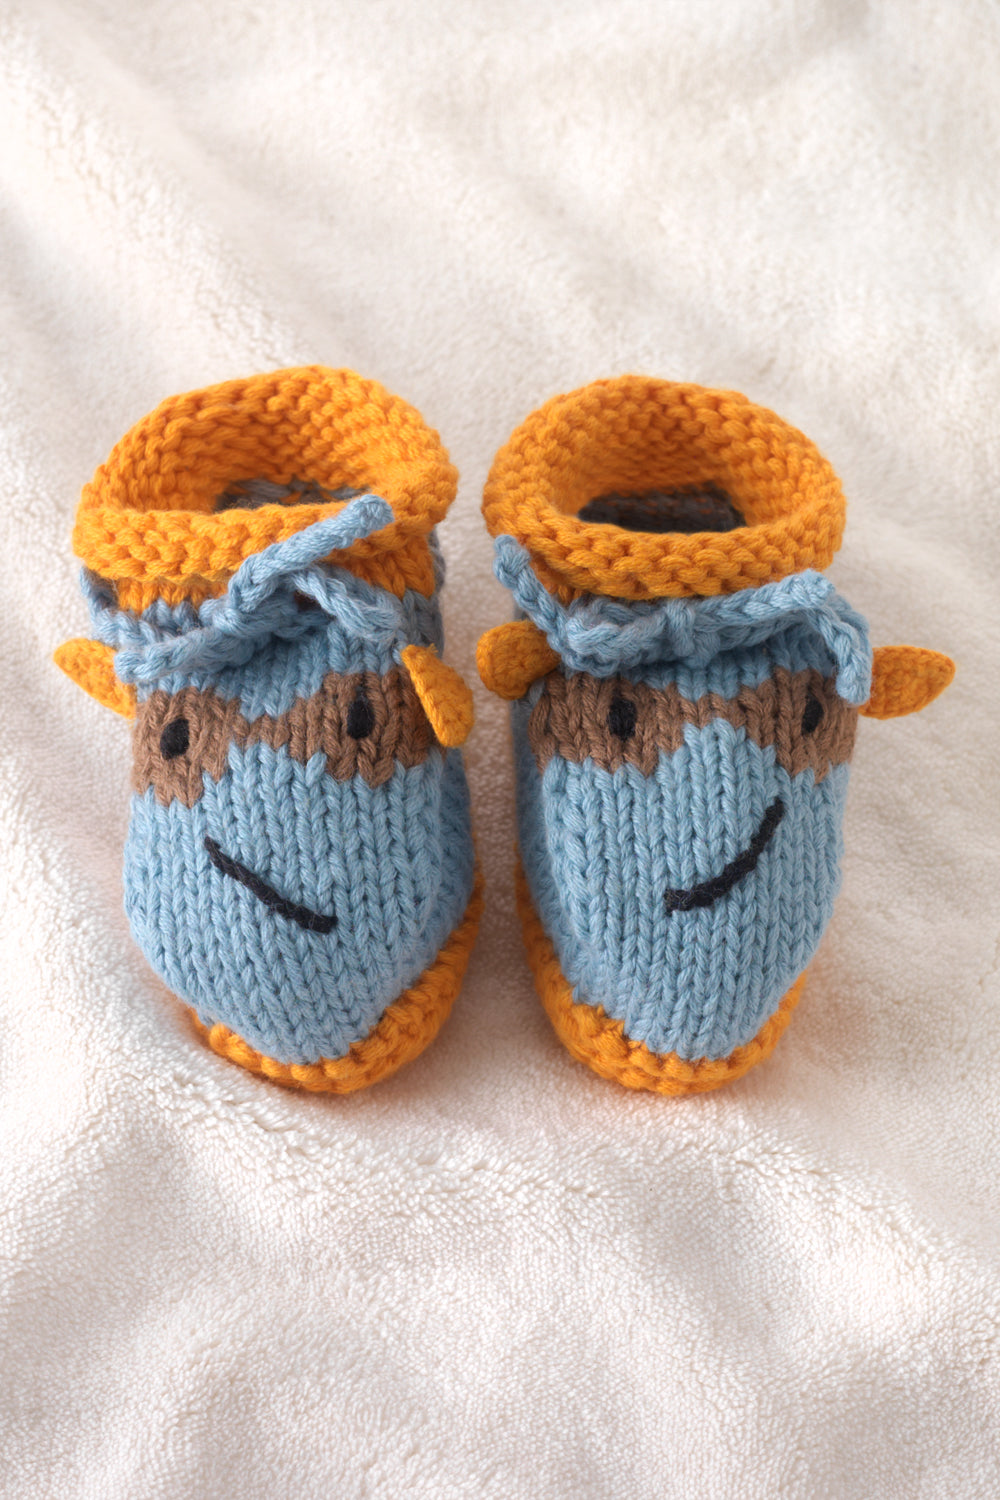 joobles-fair-trade-organic-baby-booties-racky-the-raccoon